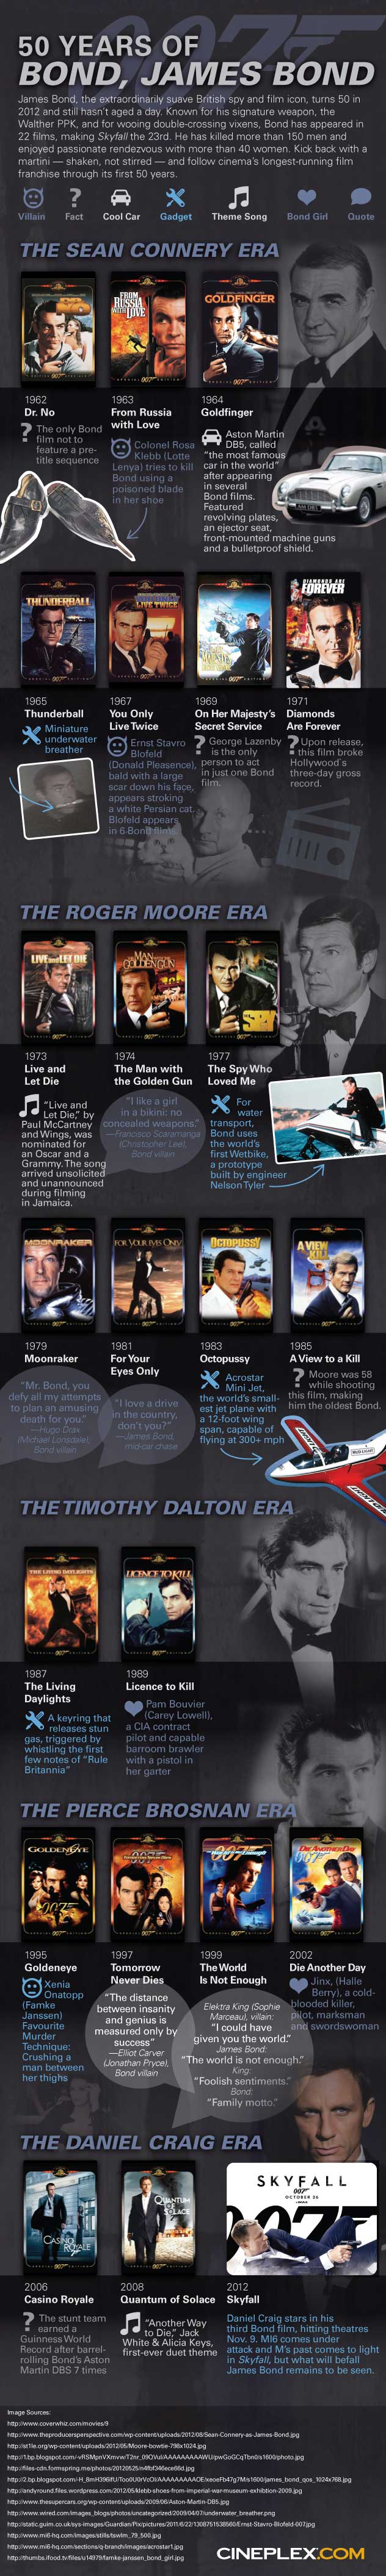 Skyfall is (almost) here! Celebrate 50 years of 007 with our infographic